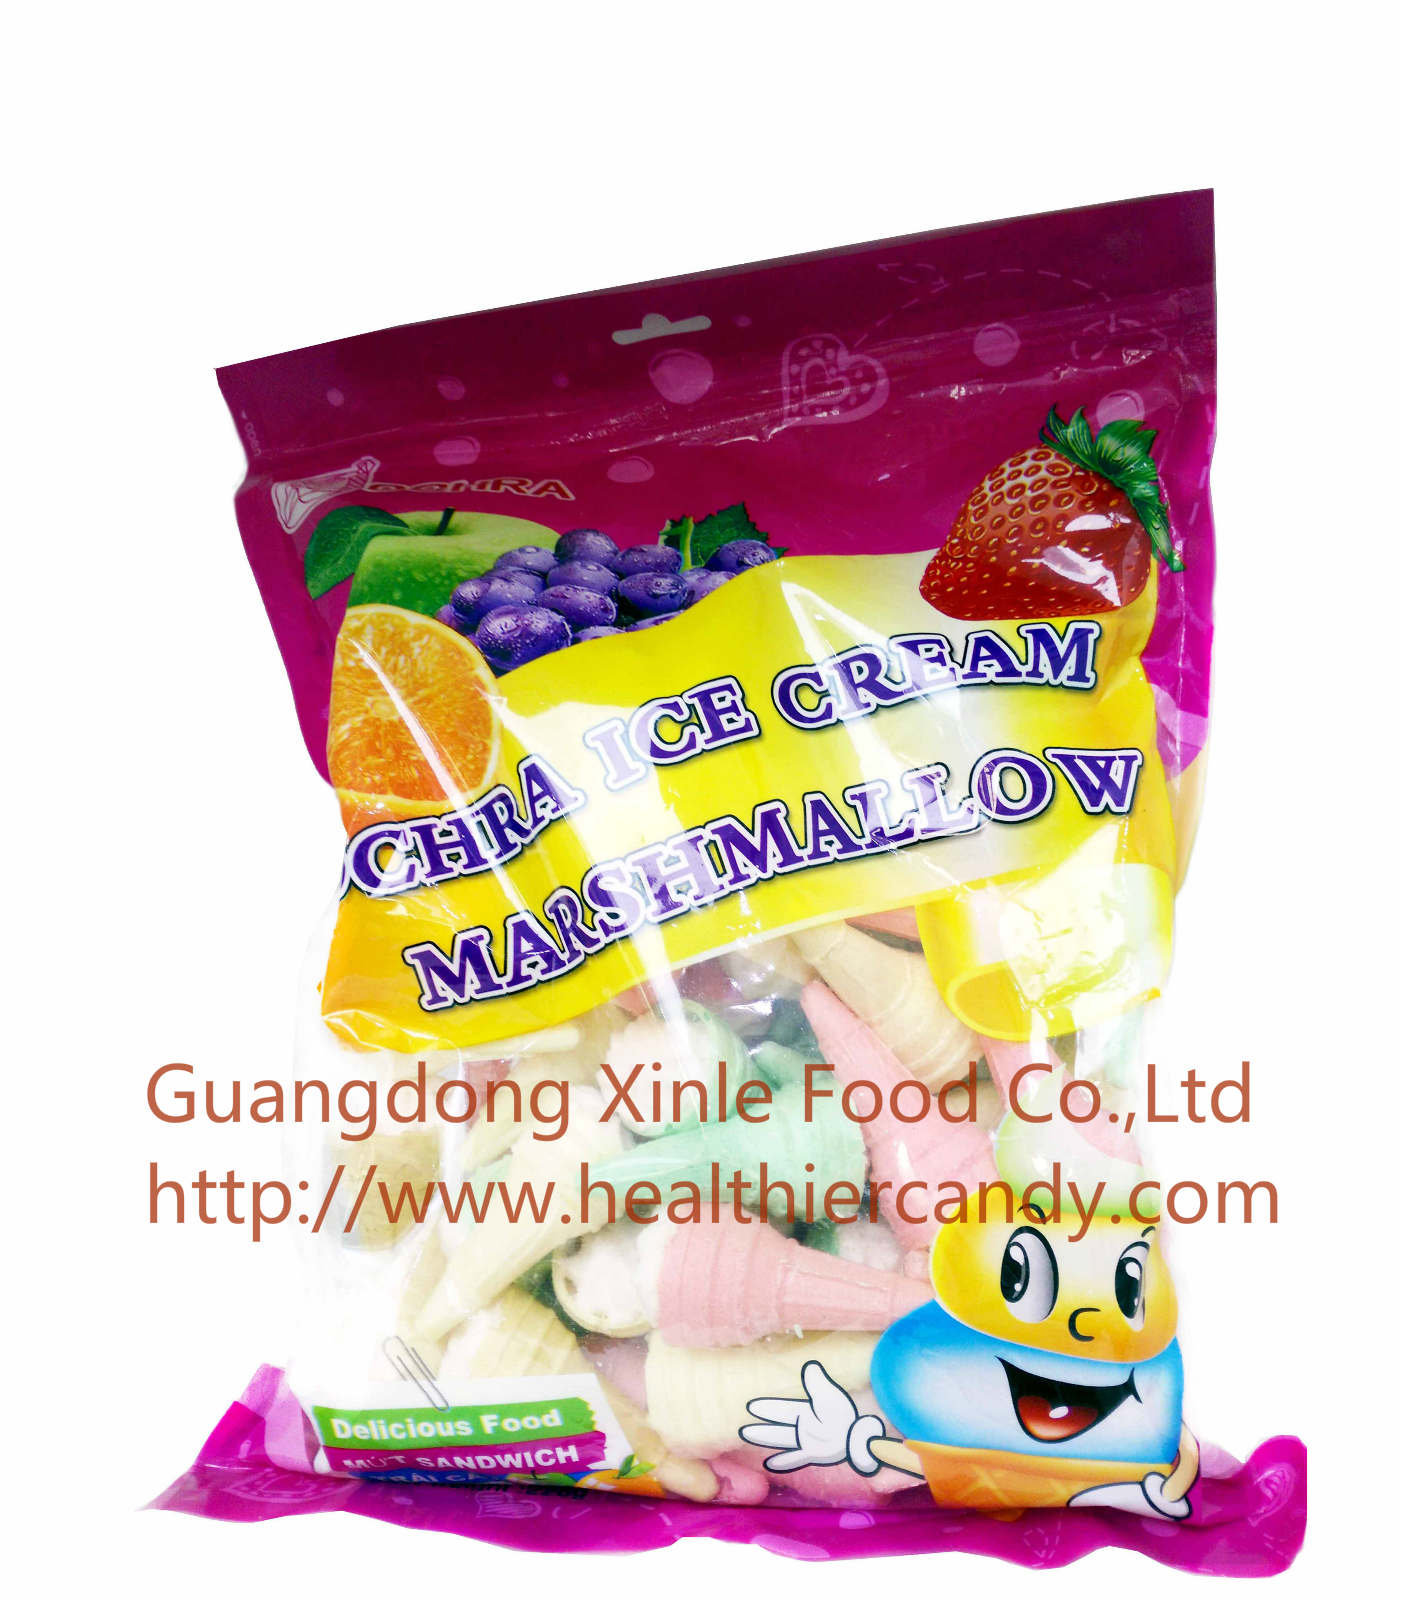 Promotional Snack Ice Cream Marshmallow In Bag Nice Taste and Sweet Kids' Love